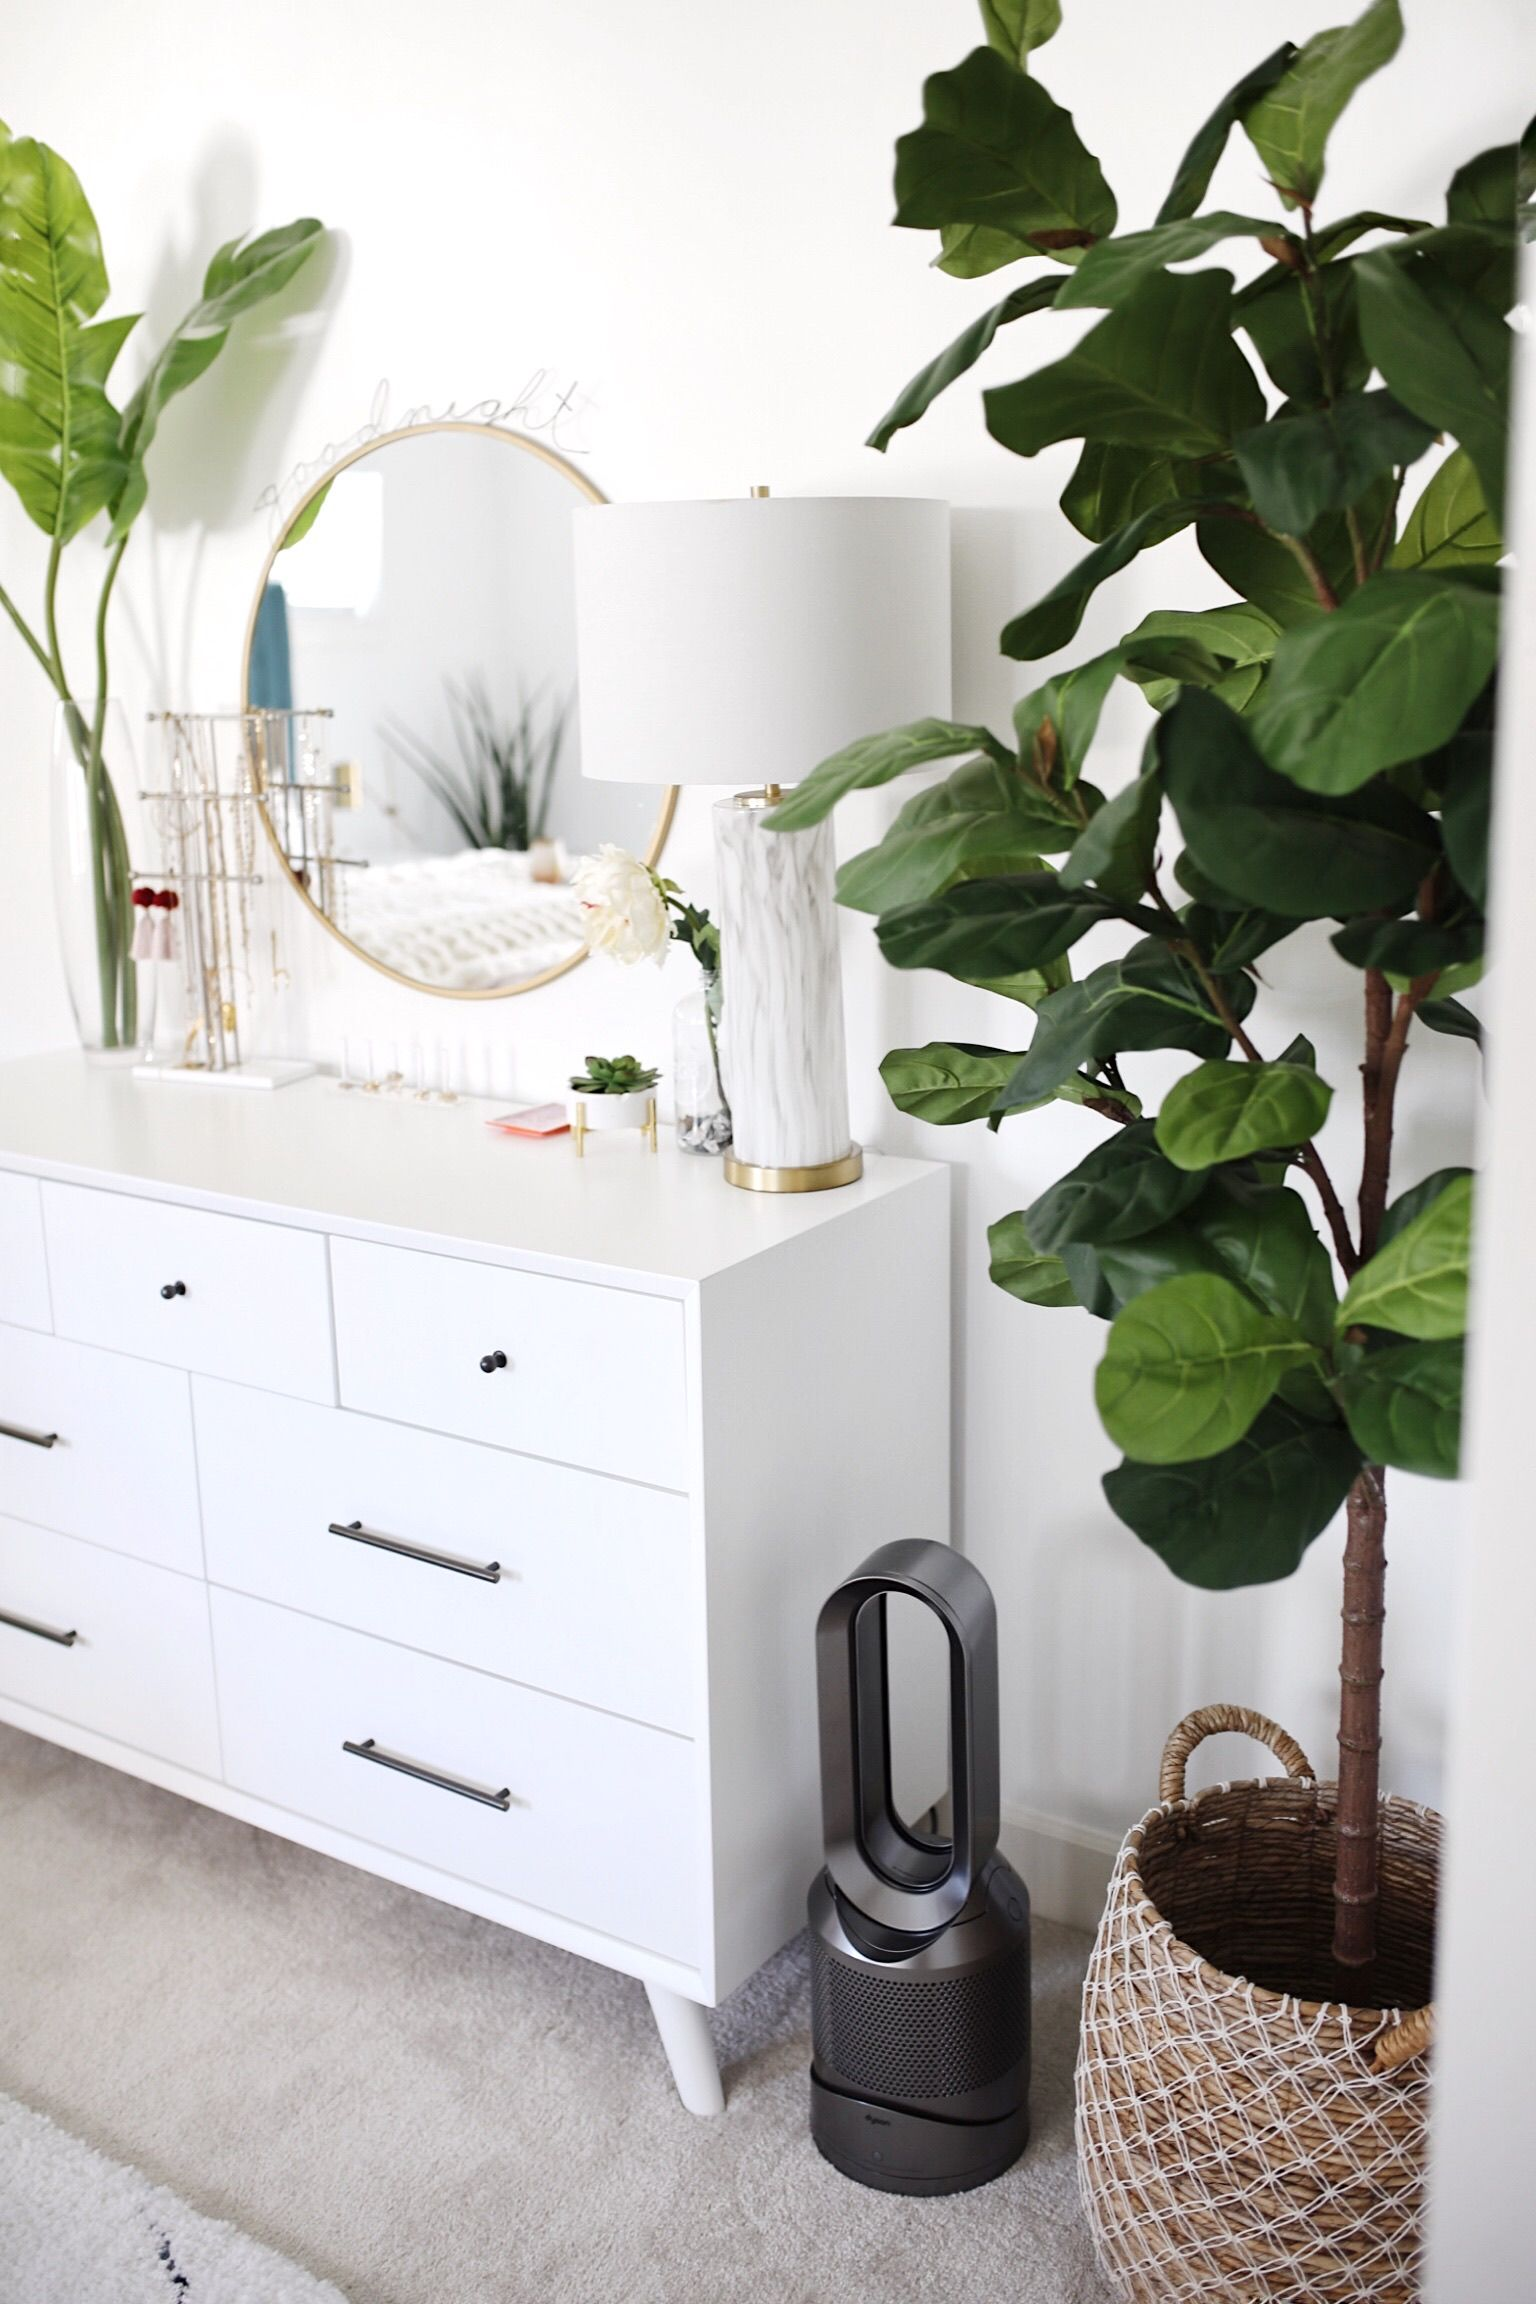 Where To Buy Realistic Artificial House Plants